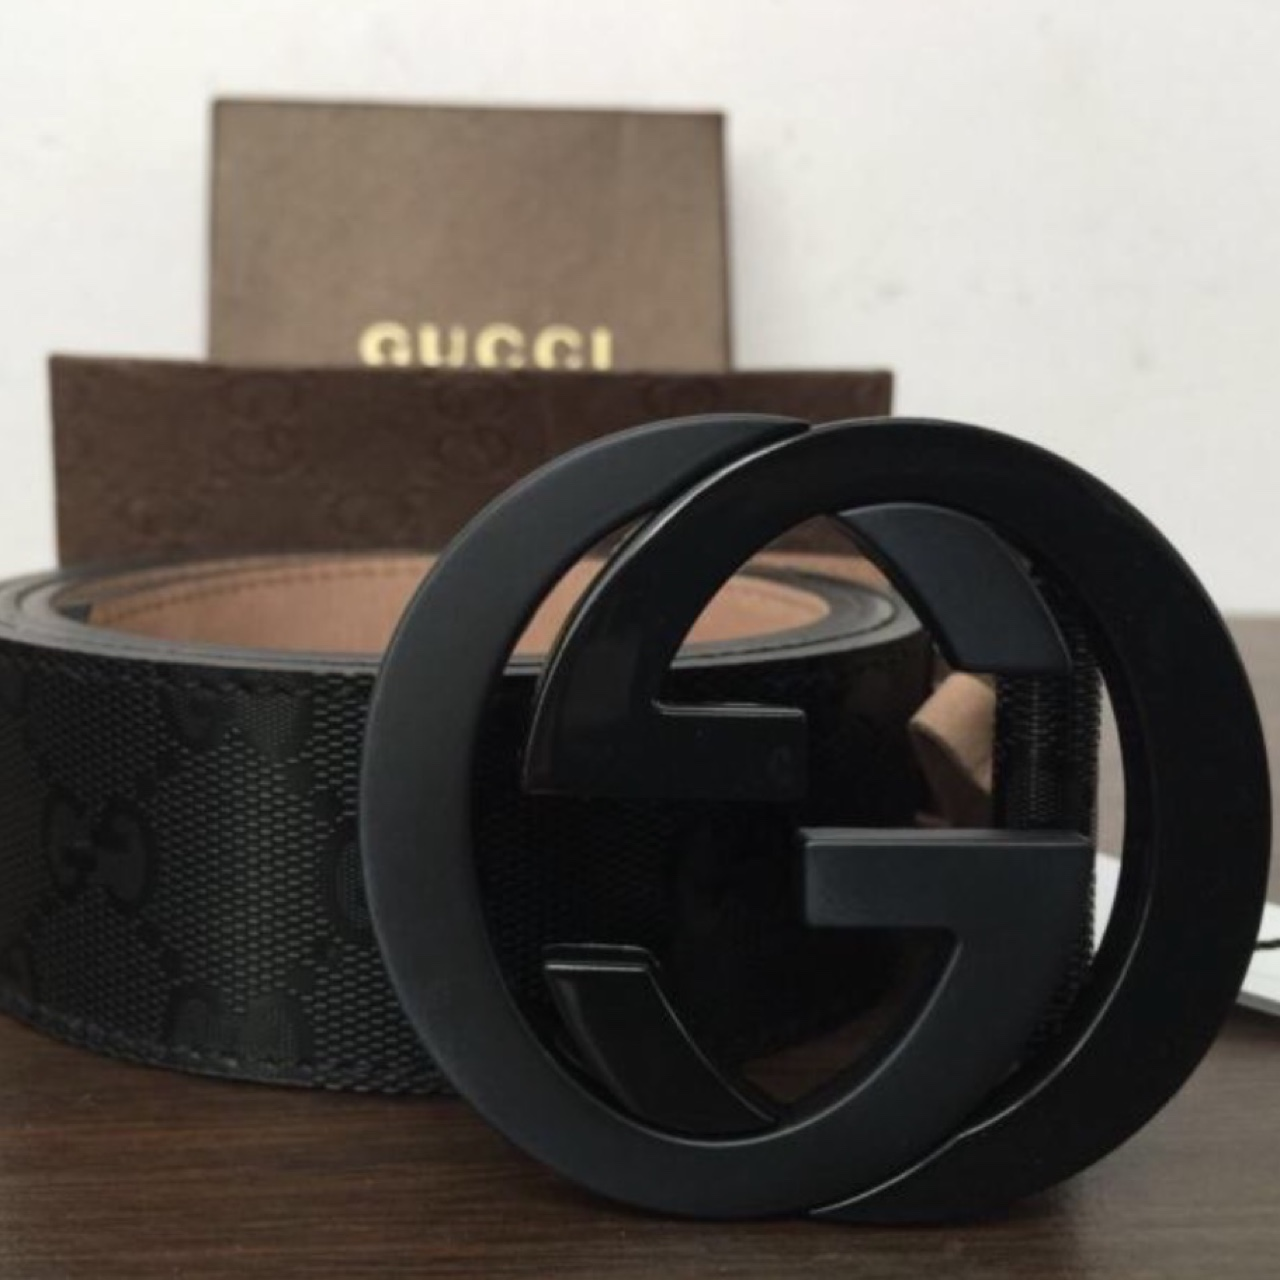 32bec4261 HA · dealstogo9. Queens County, United States. NWT Authentic Gucci Men's  Black GG Imprimé Shiny Belt ...